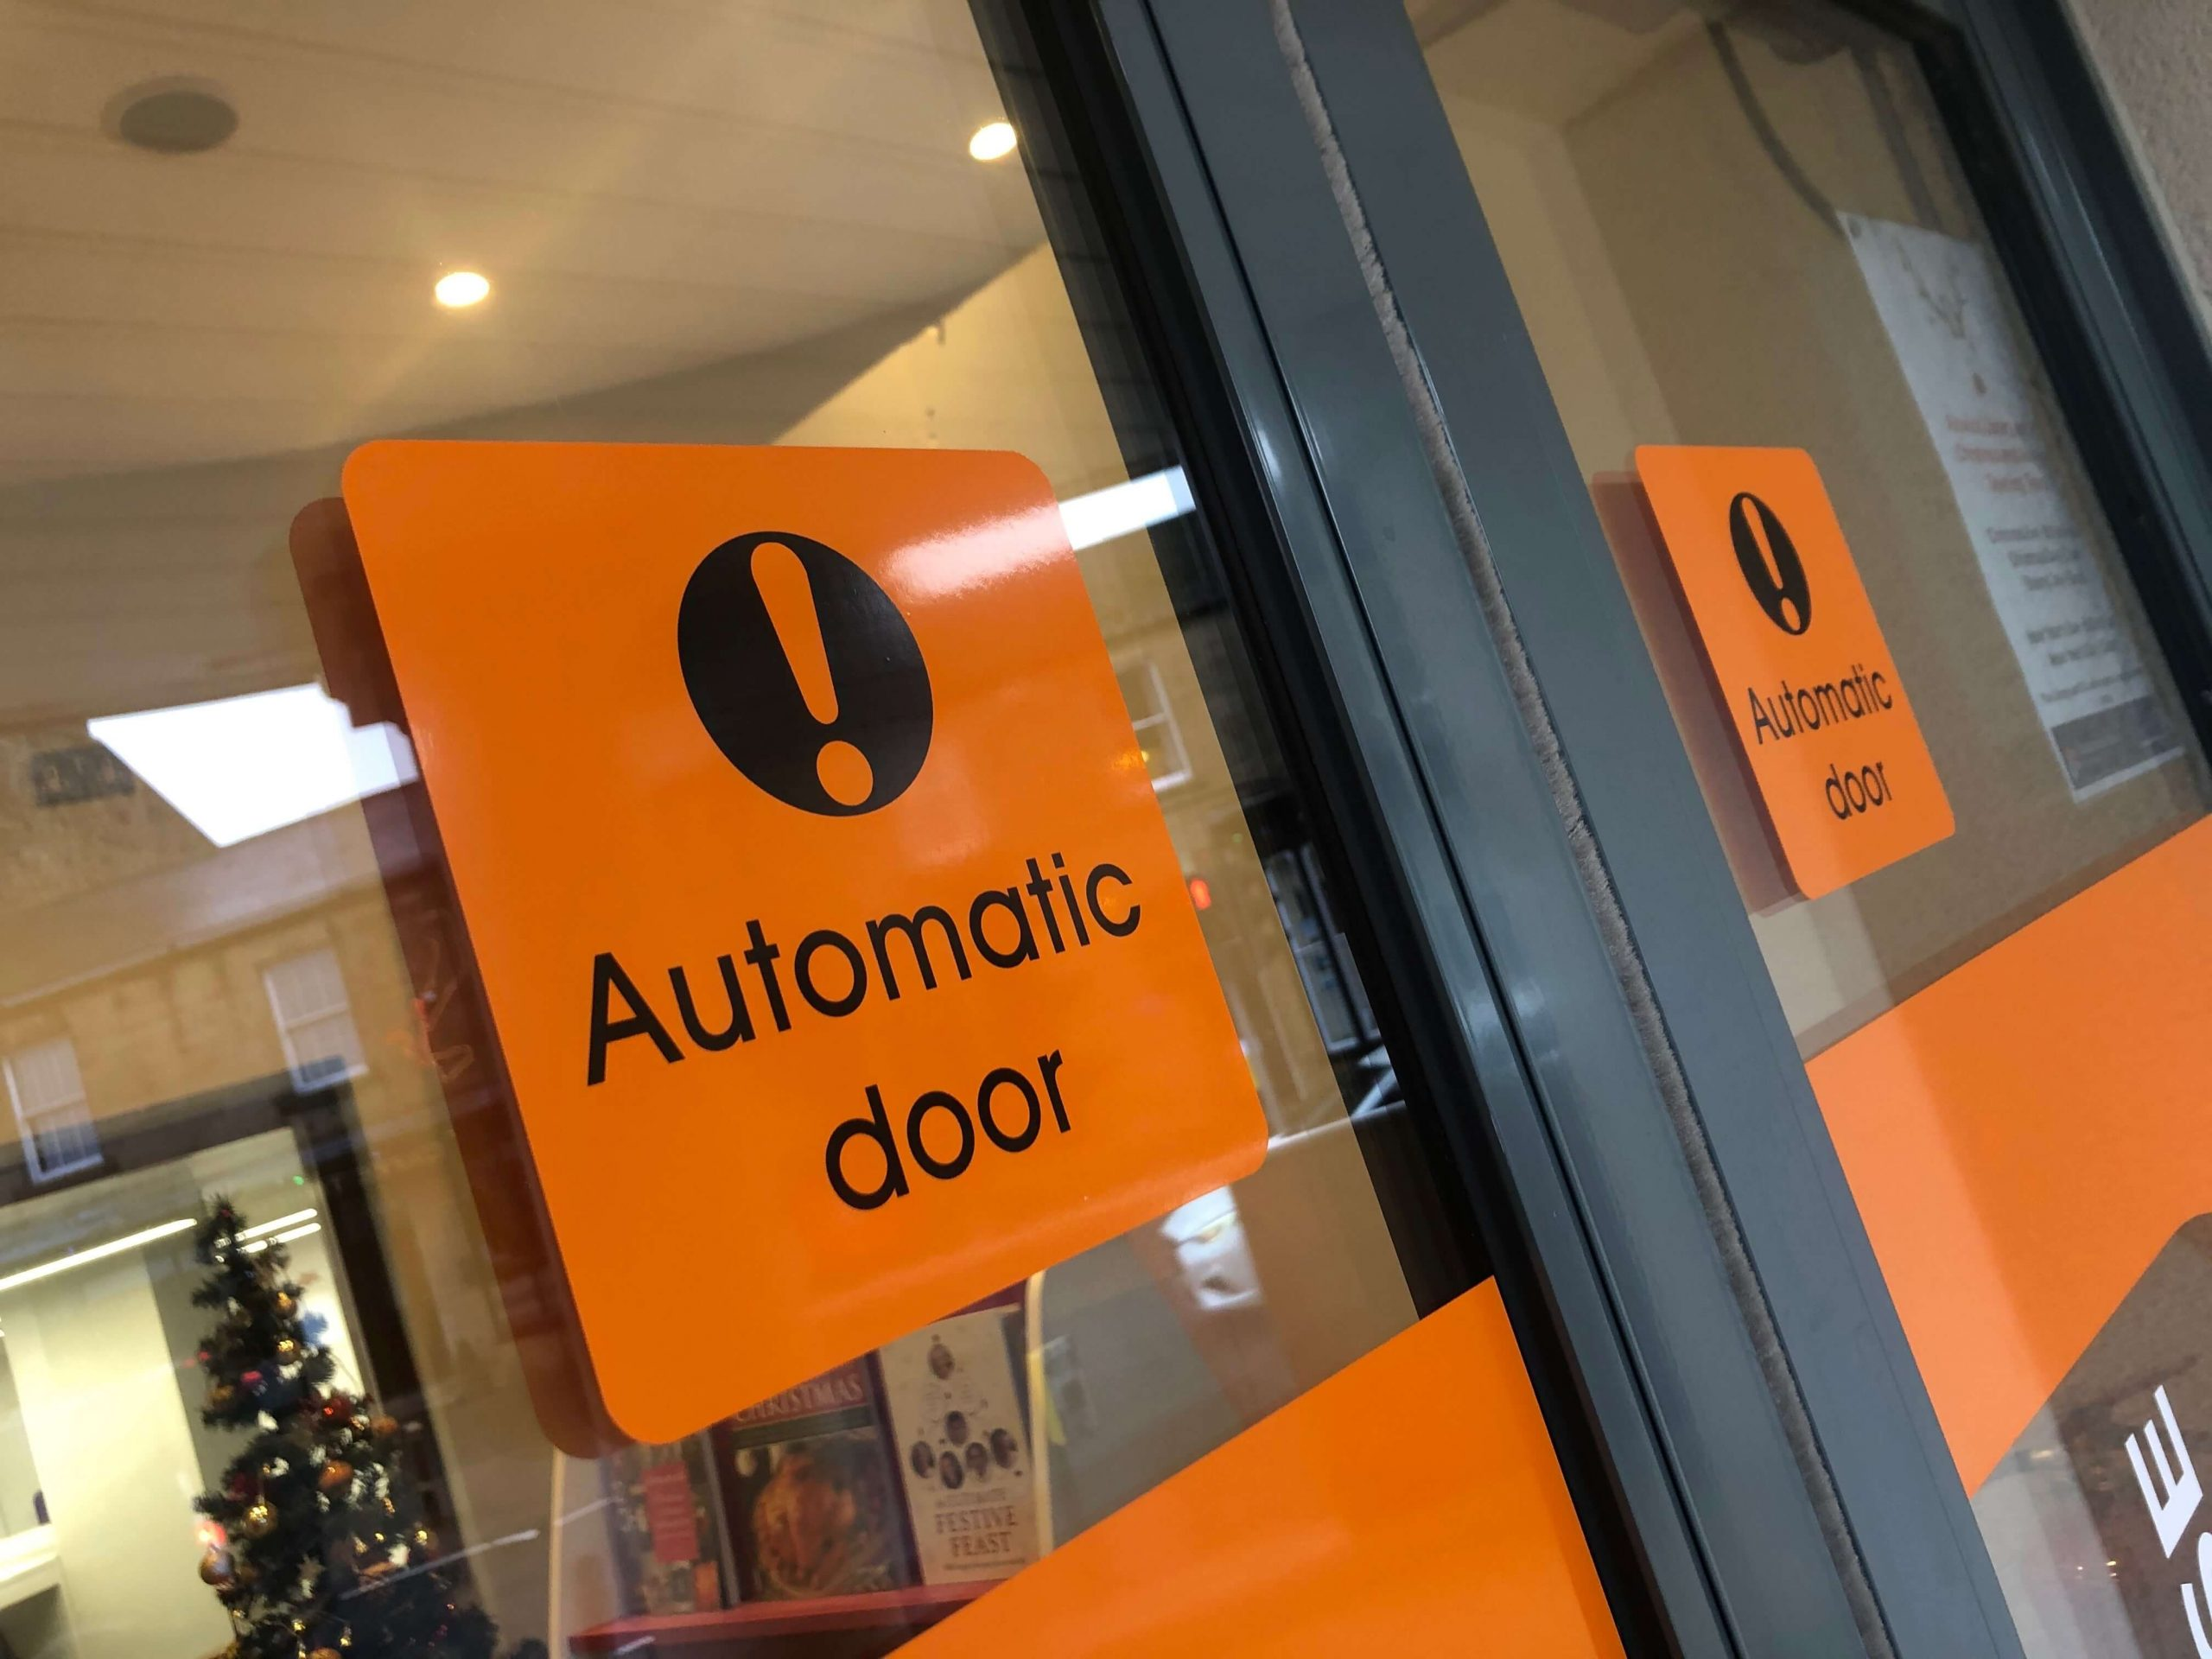 Automatic door signage at Alnwick Playhouse